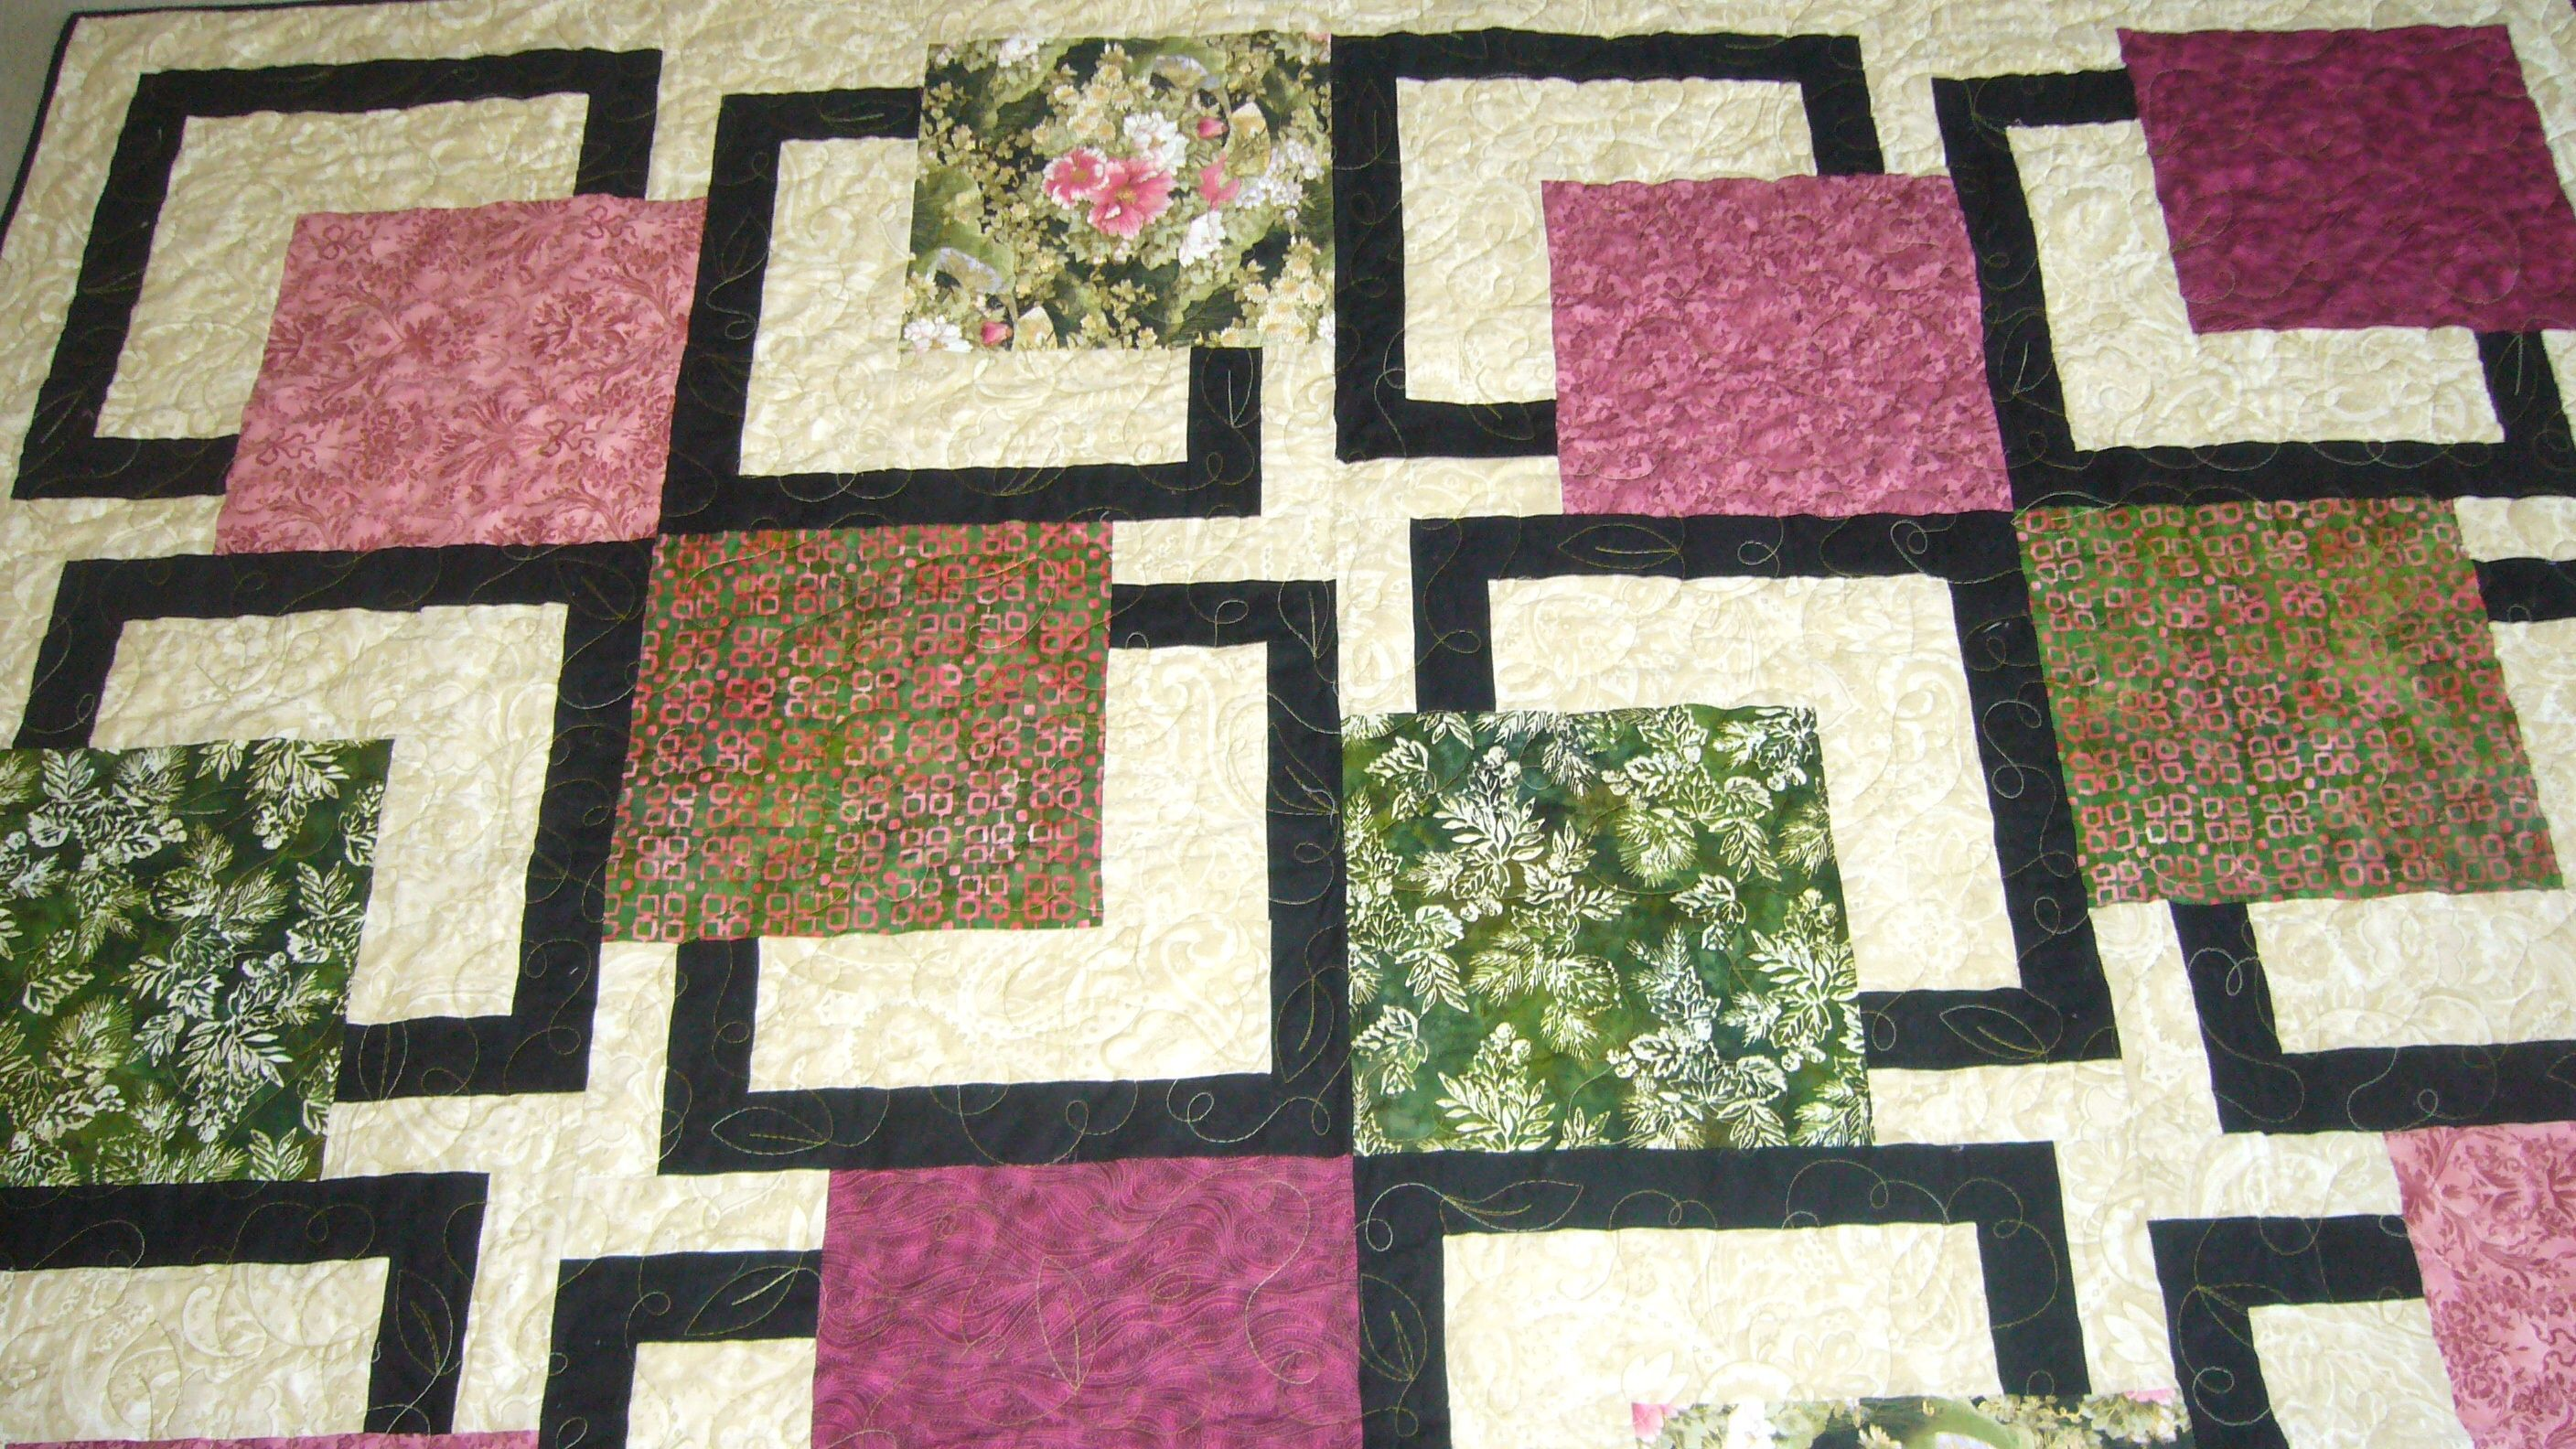 Free Quilt Patterns From Pinterest : Family quilt pattern: